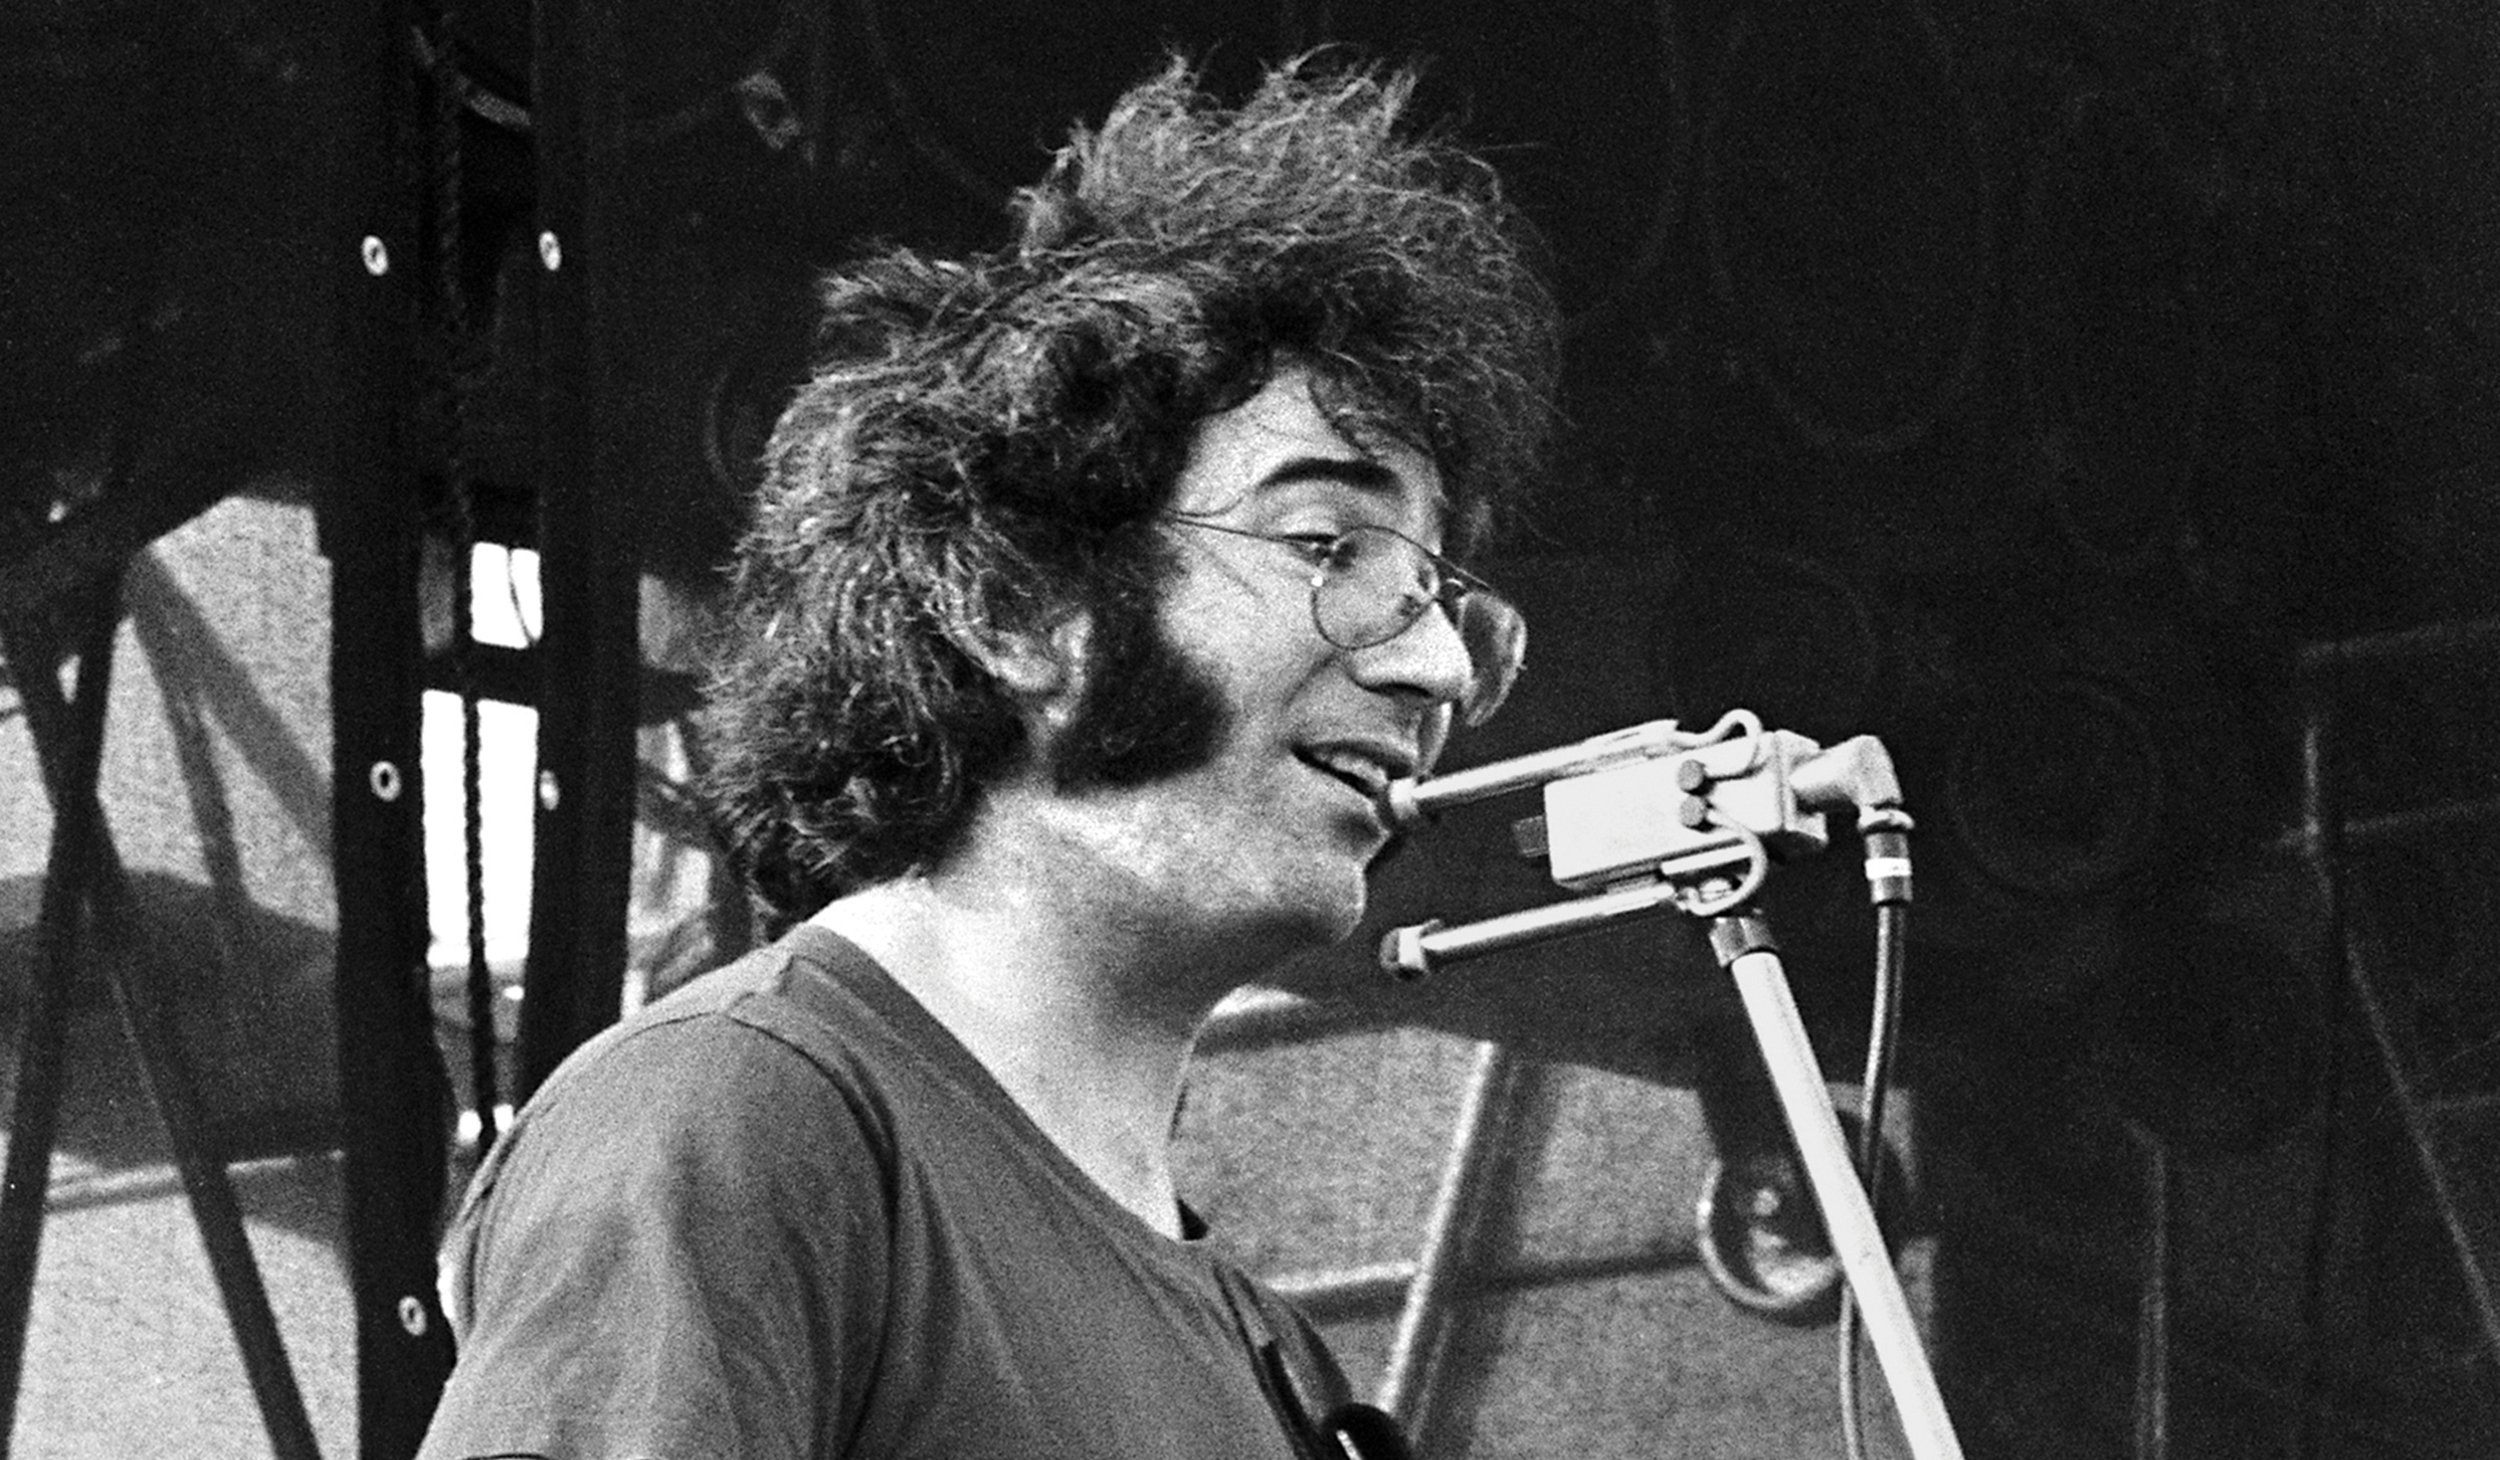 a history of the grateful dead an american rock band The grateful dead were an american rock band that formed in 1965 in northern california they came to fame as part of  grateful dead records: history.